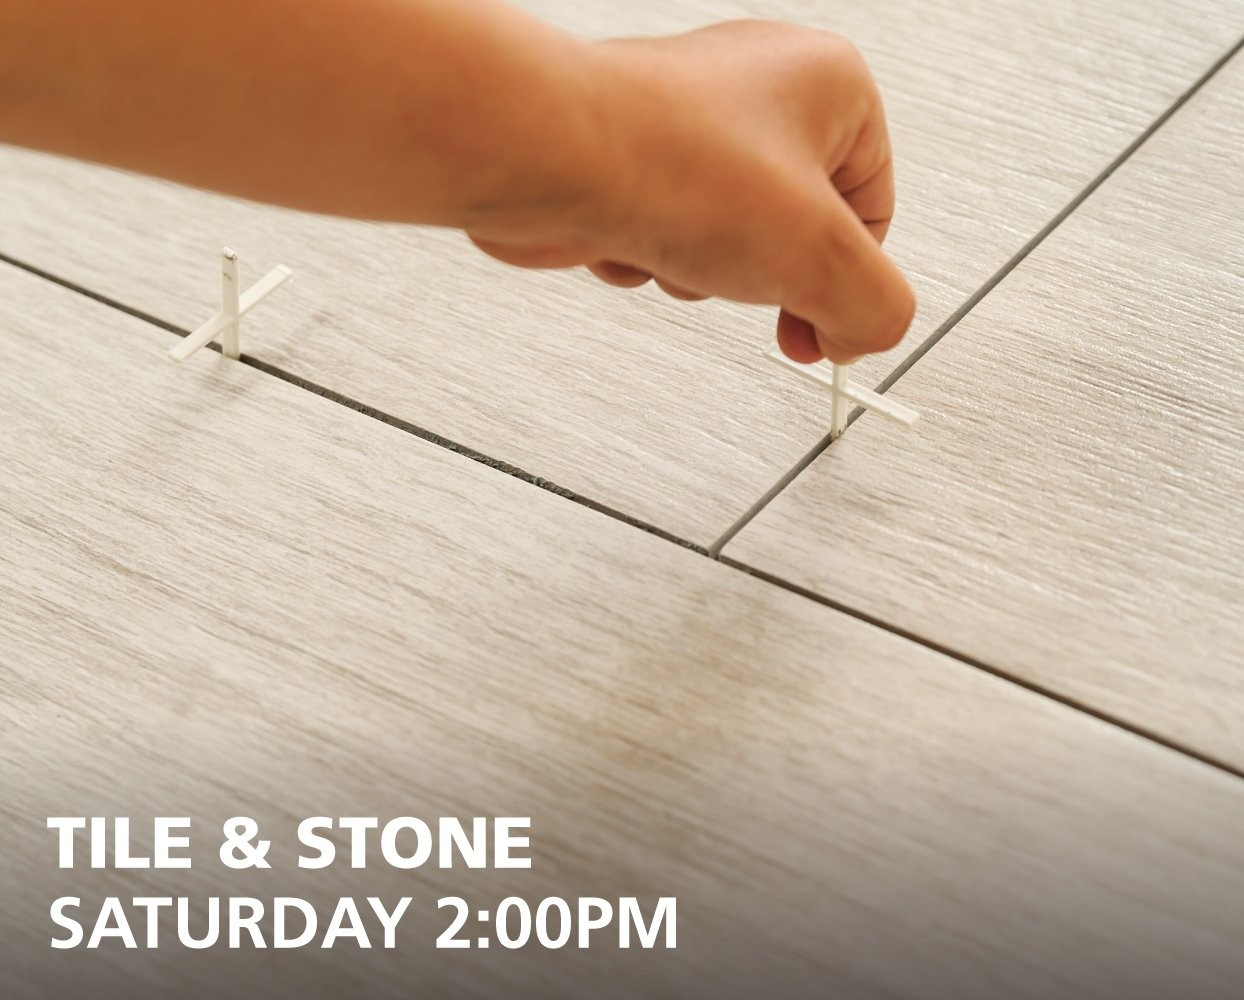 Tile & Stone How To classes - Saturdays at 2:00pm